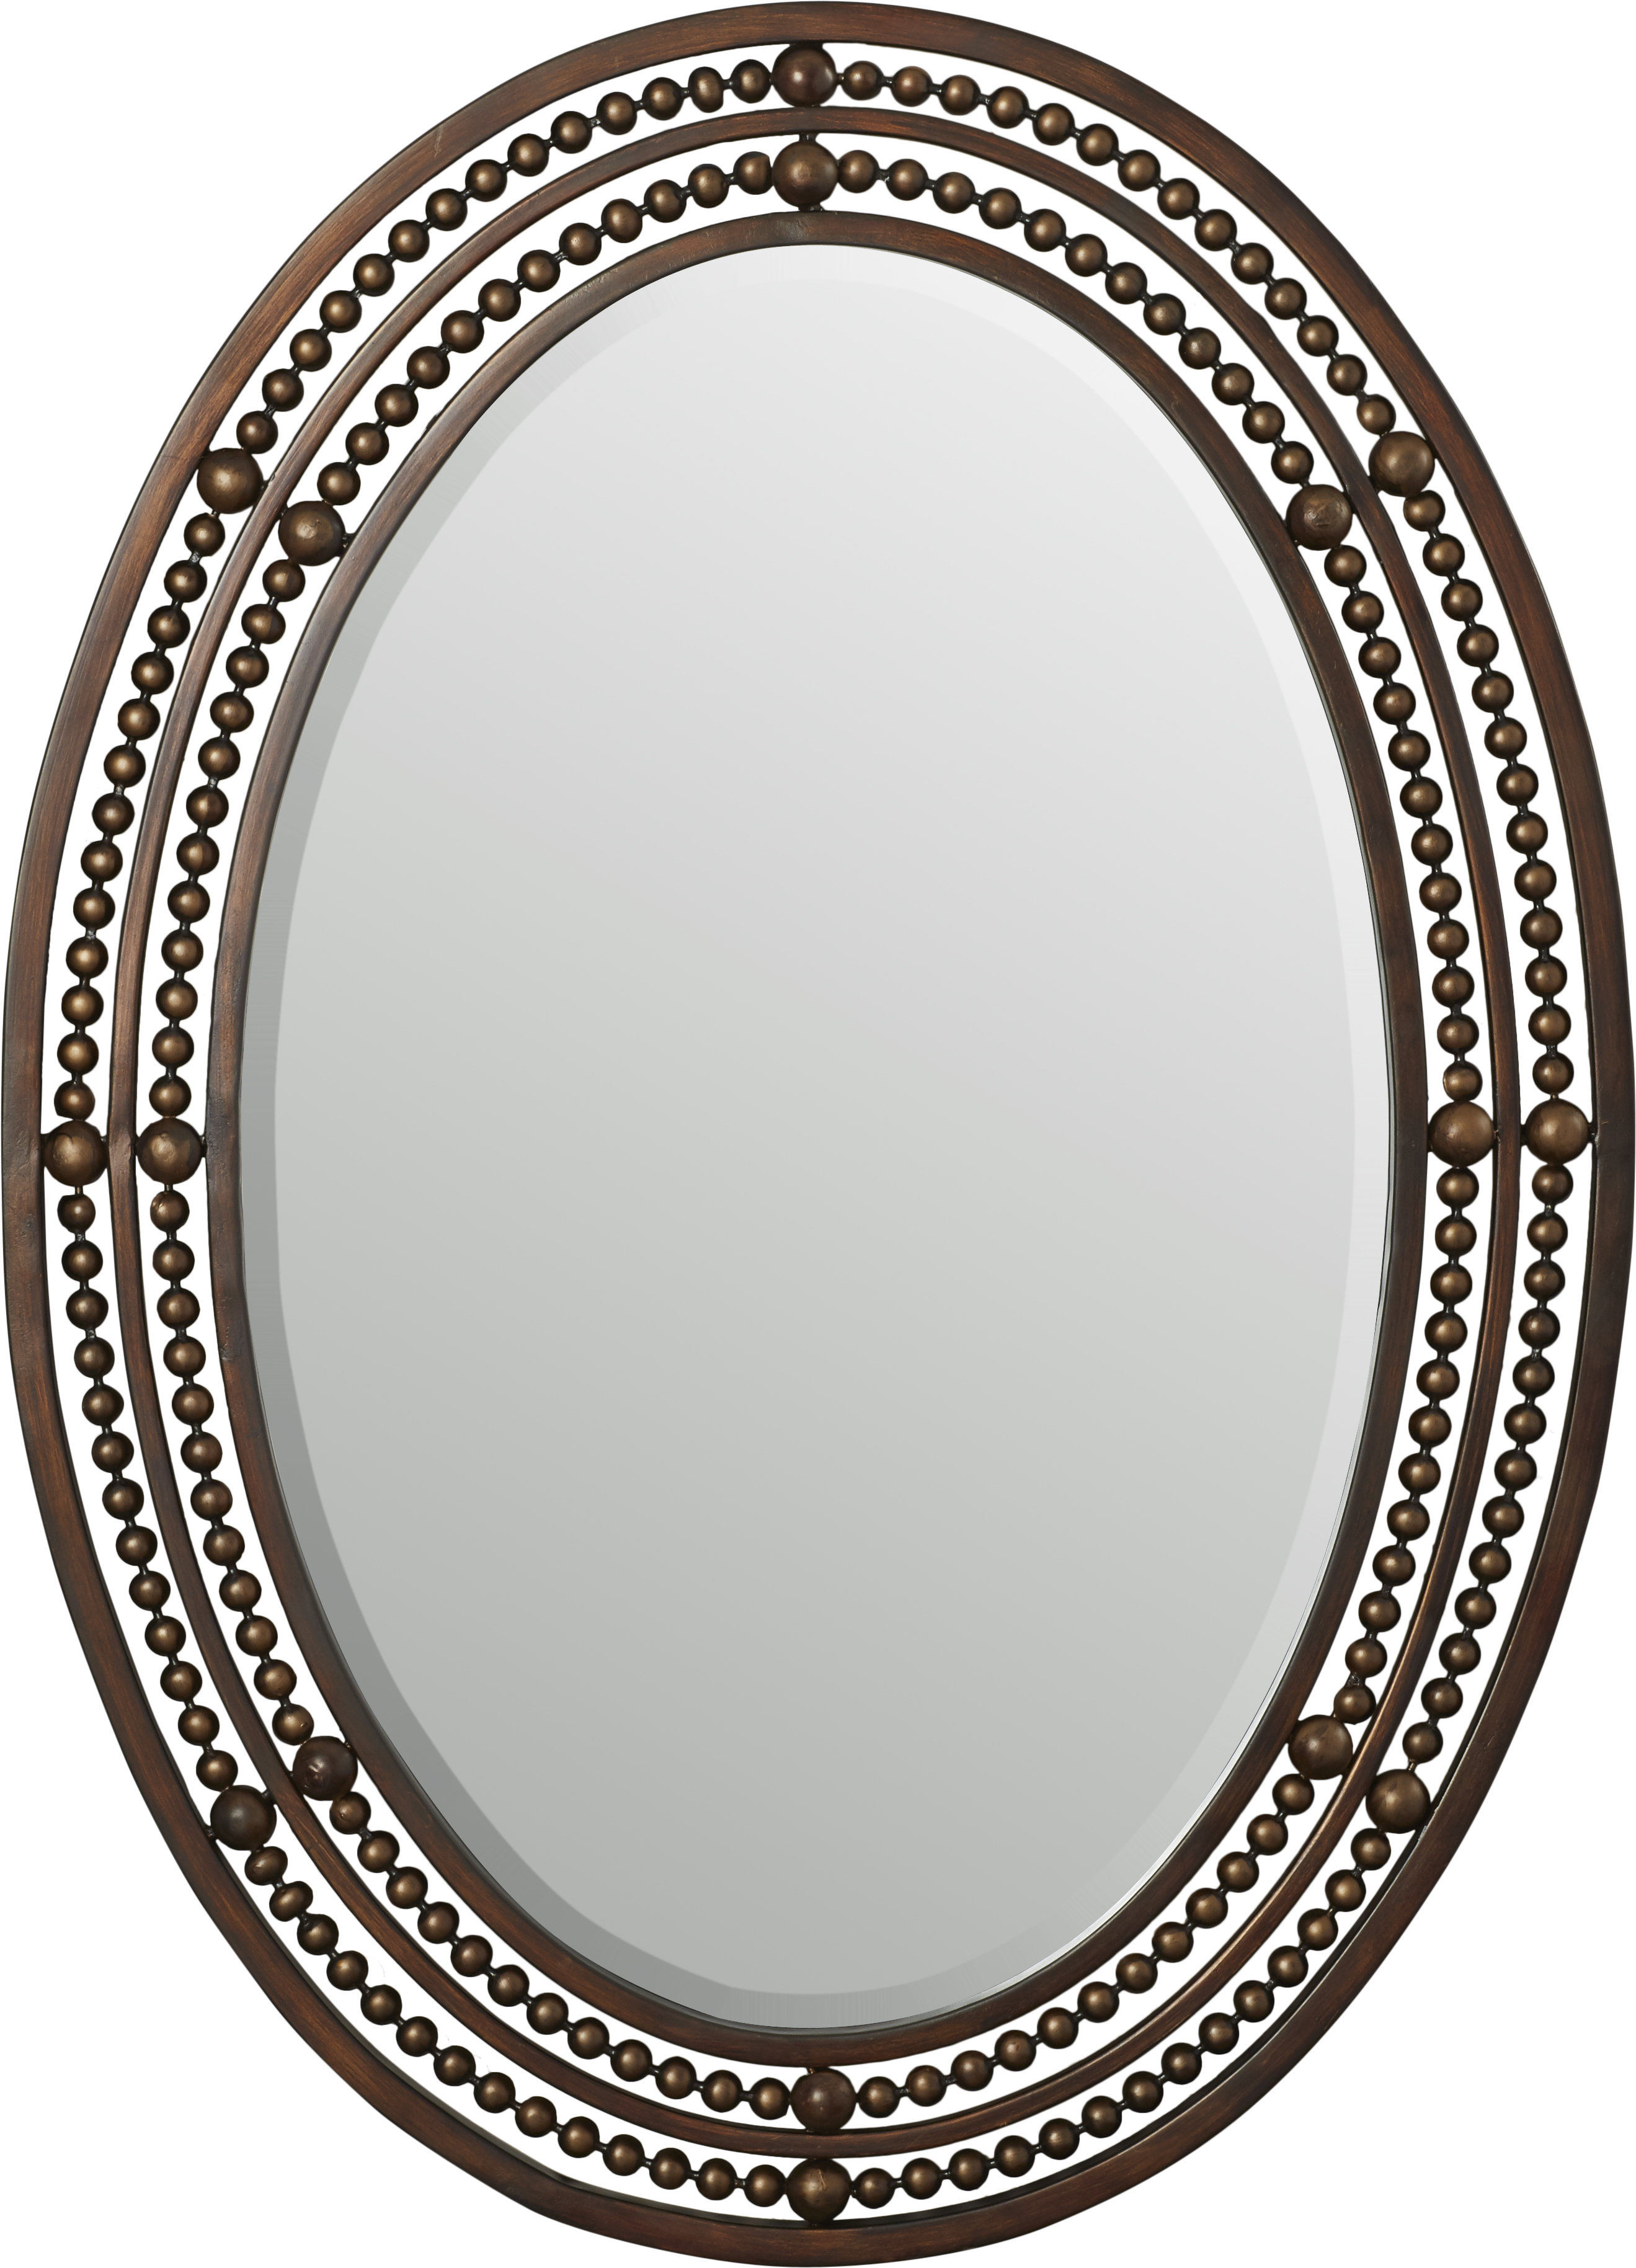 Leeper Oval Wall Mirror Inside Maude Accent Mirrors (View 23 of 30)